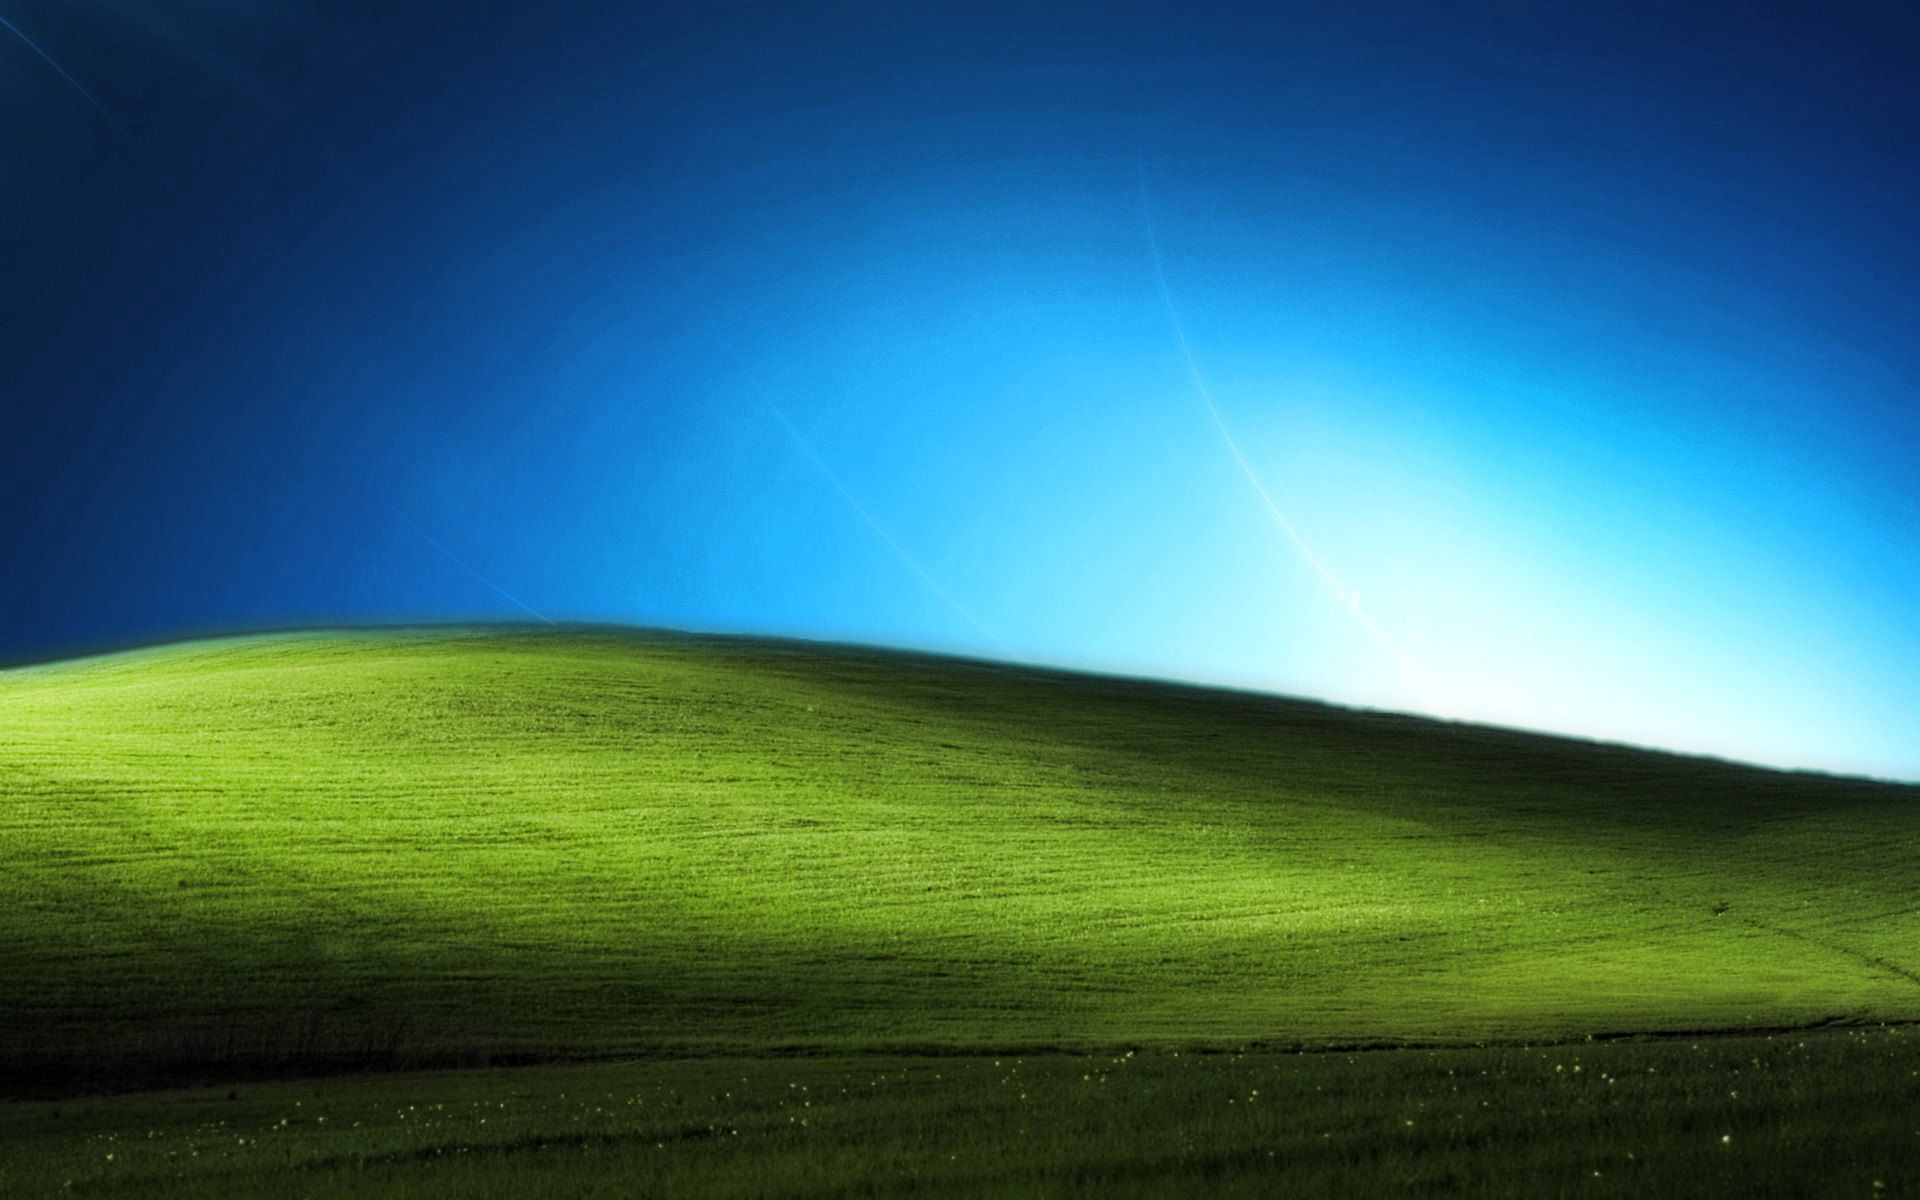 Windows XP Wallpapers HD Wallpaper 4K